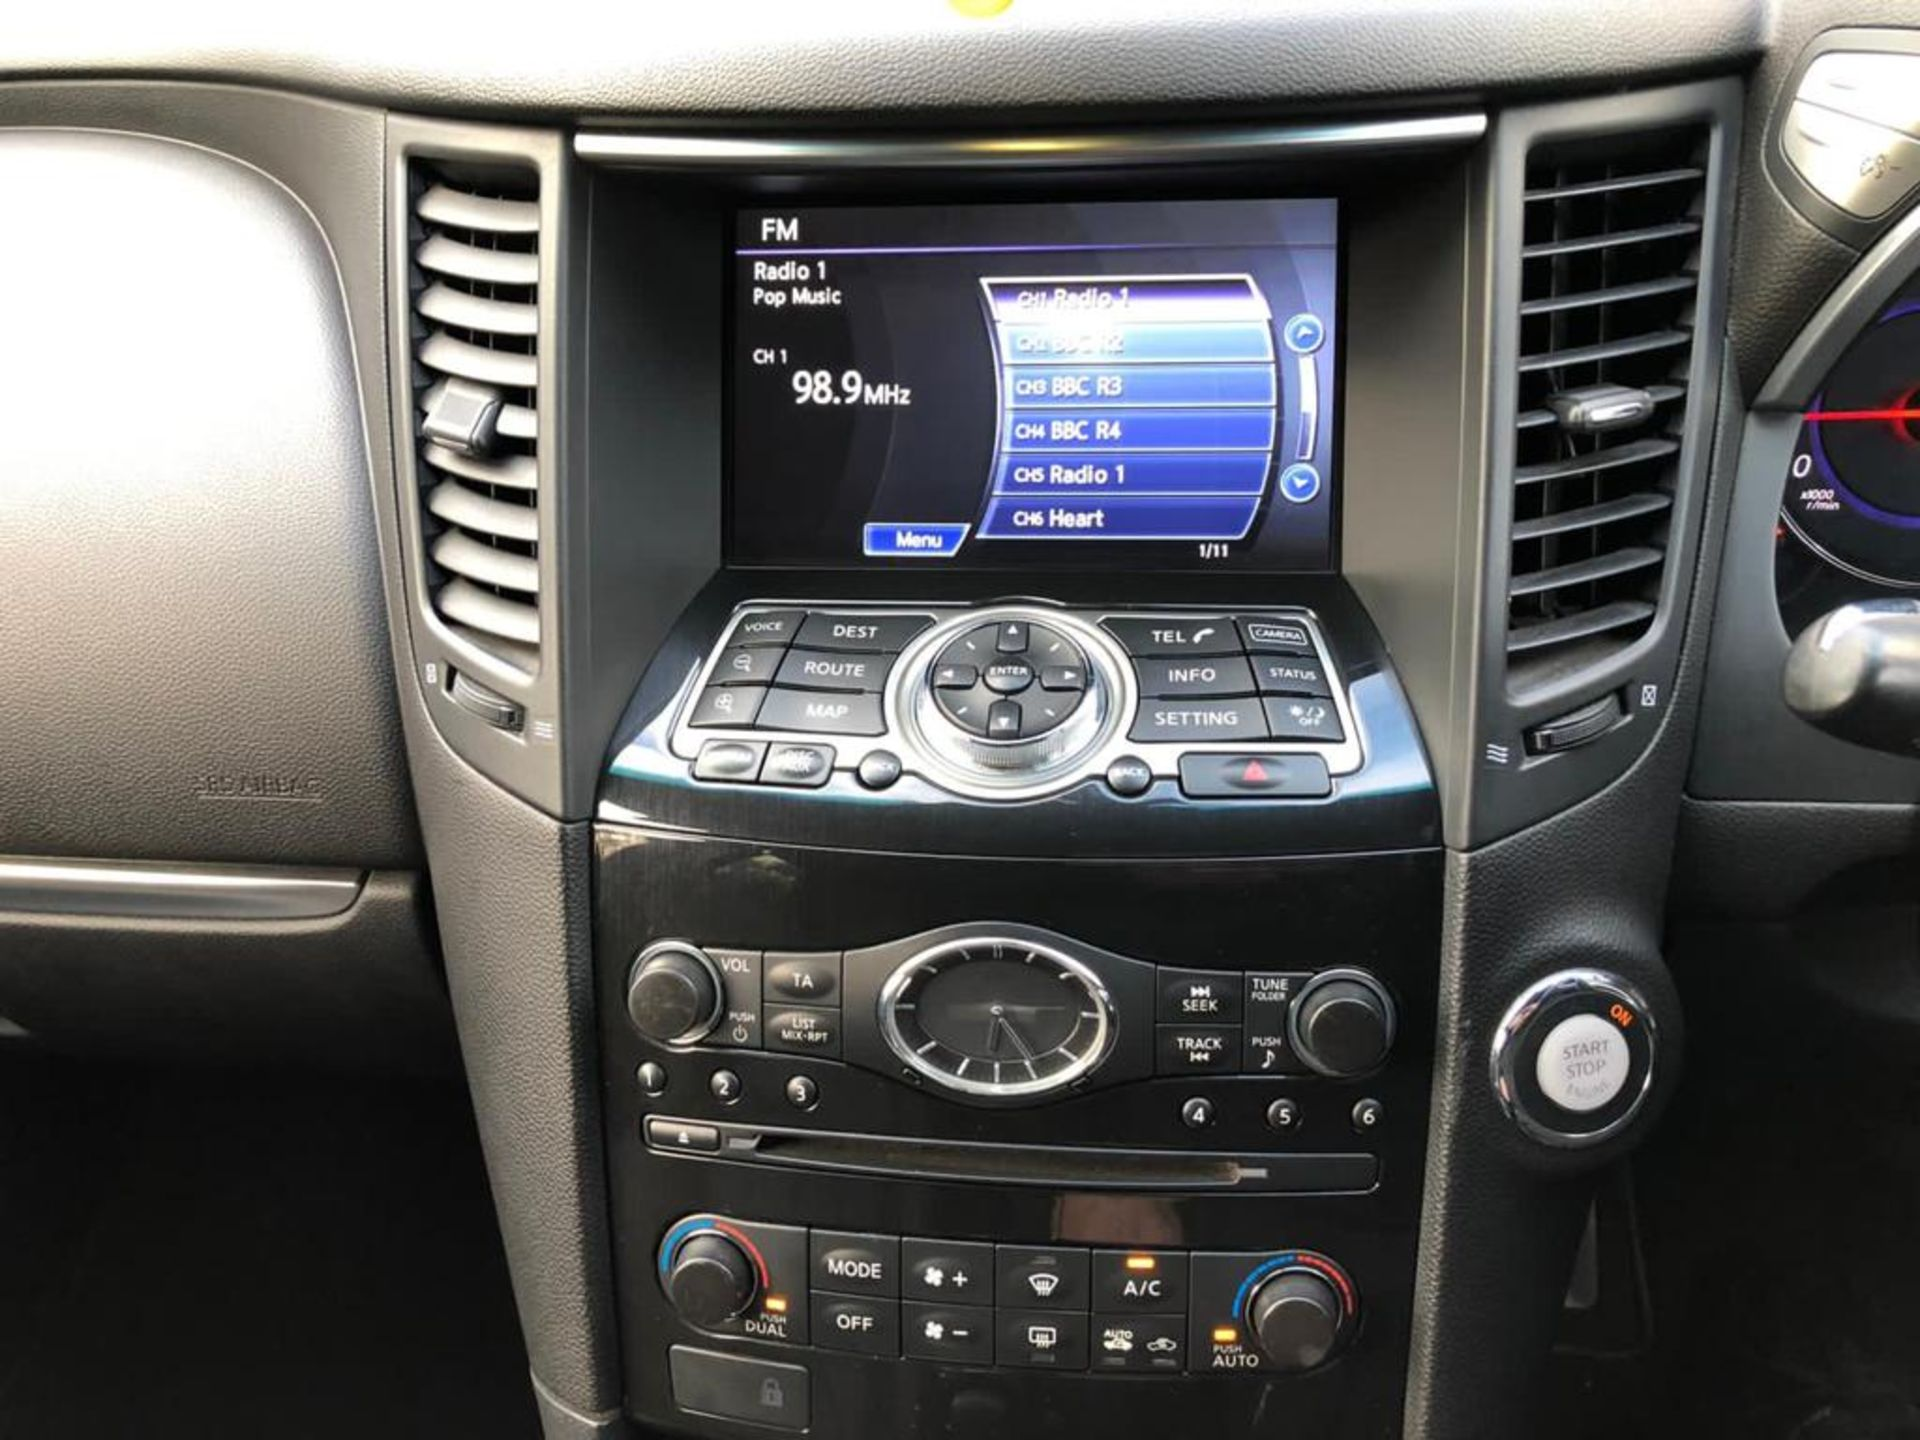 2010/10 REG INFINITI FX30 S AUTO 3.0L DIESEL 7 SPEED AUTOMATIC, SHOWING 2 FORMER KEEPERS *NO VAT* - Image 6 of 22